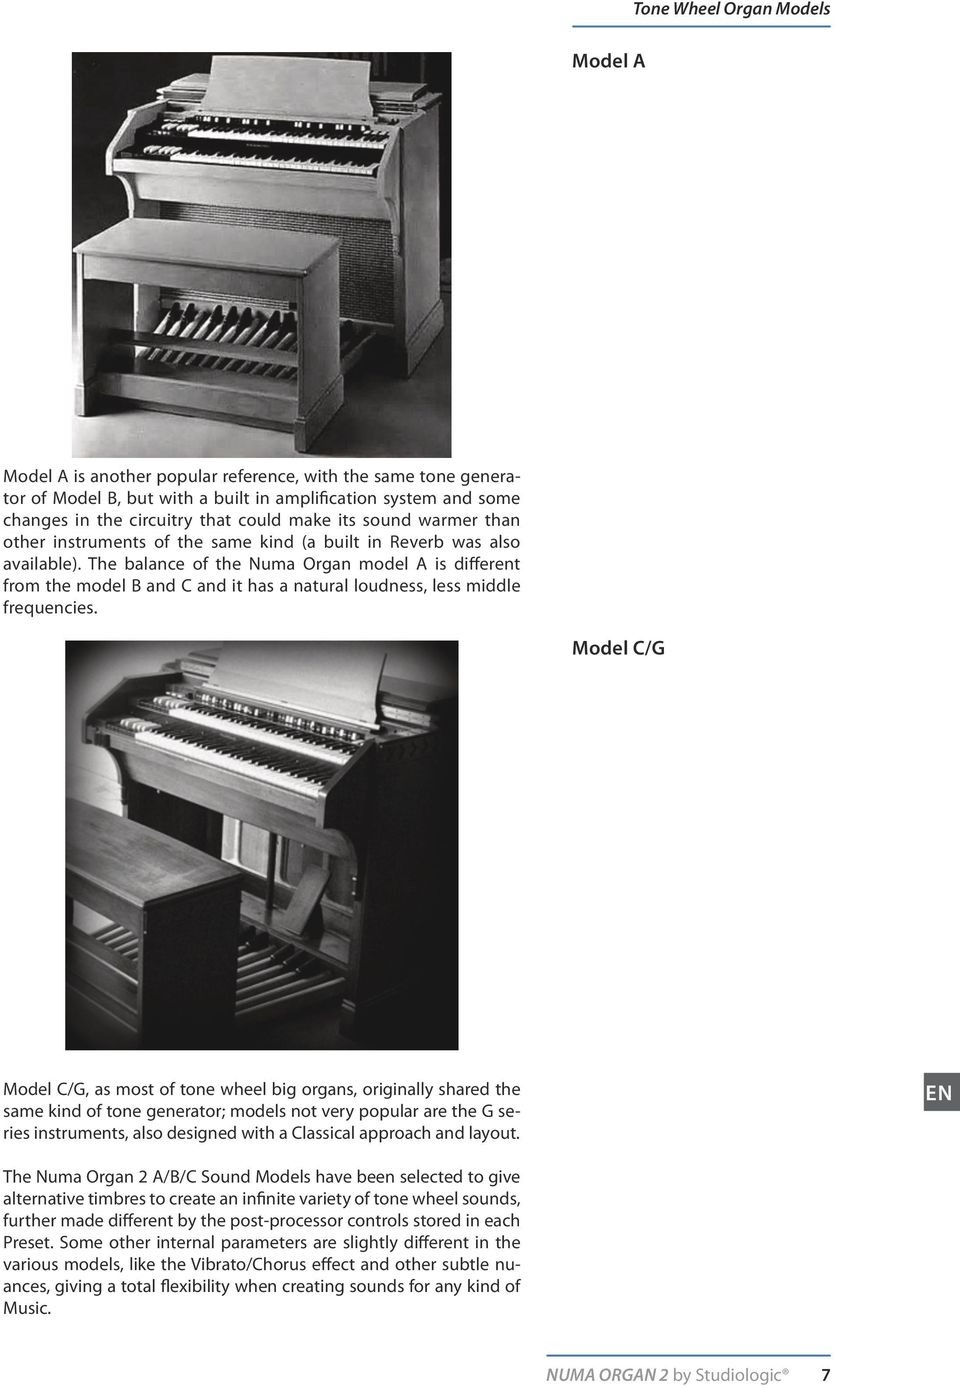 The balance of the Numa Organ model A is different from the model B and C and it has a natural loudness, less middle frequencies.